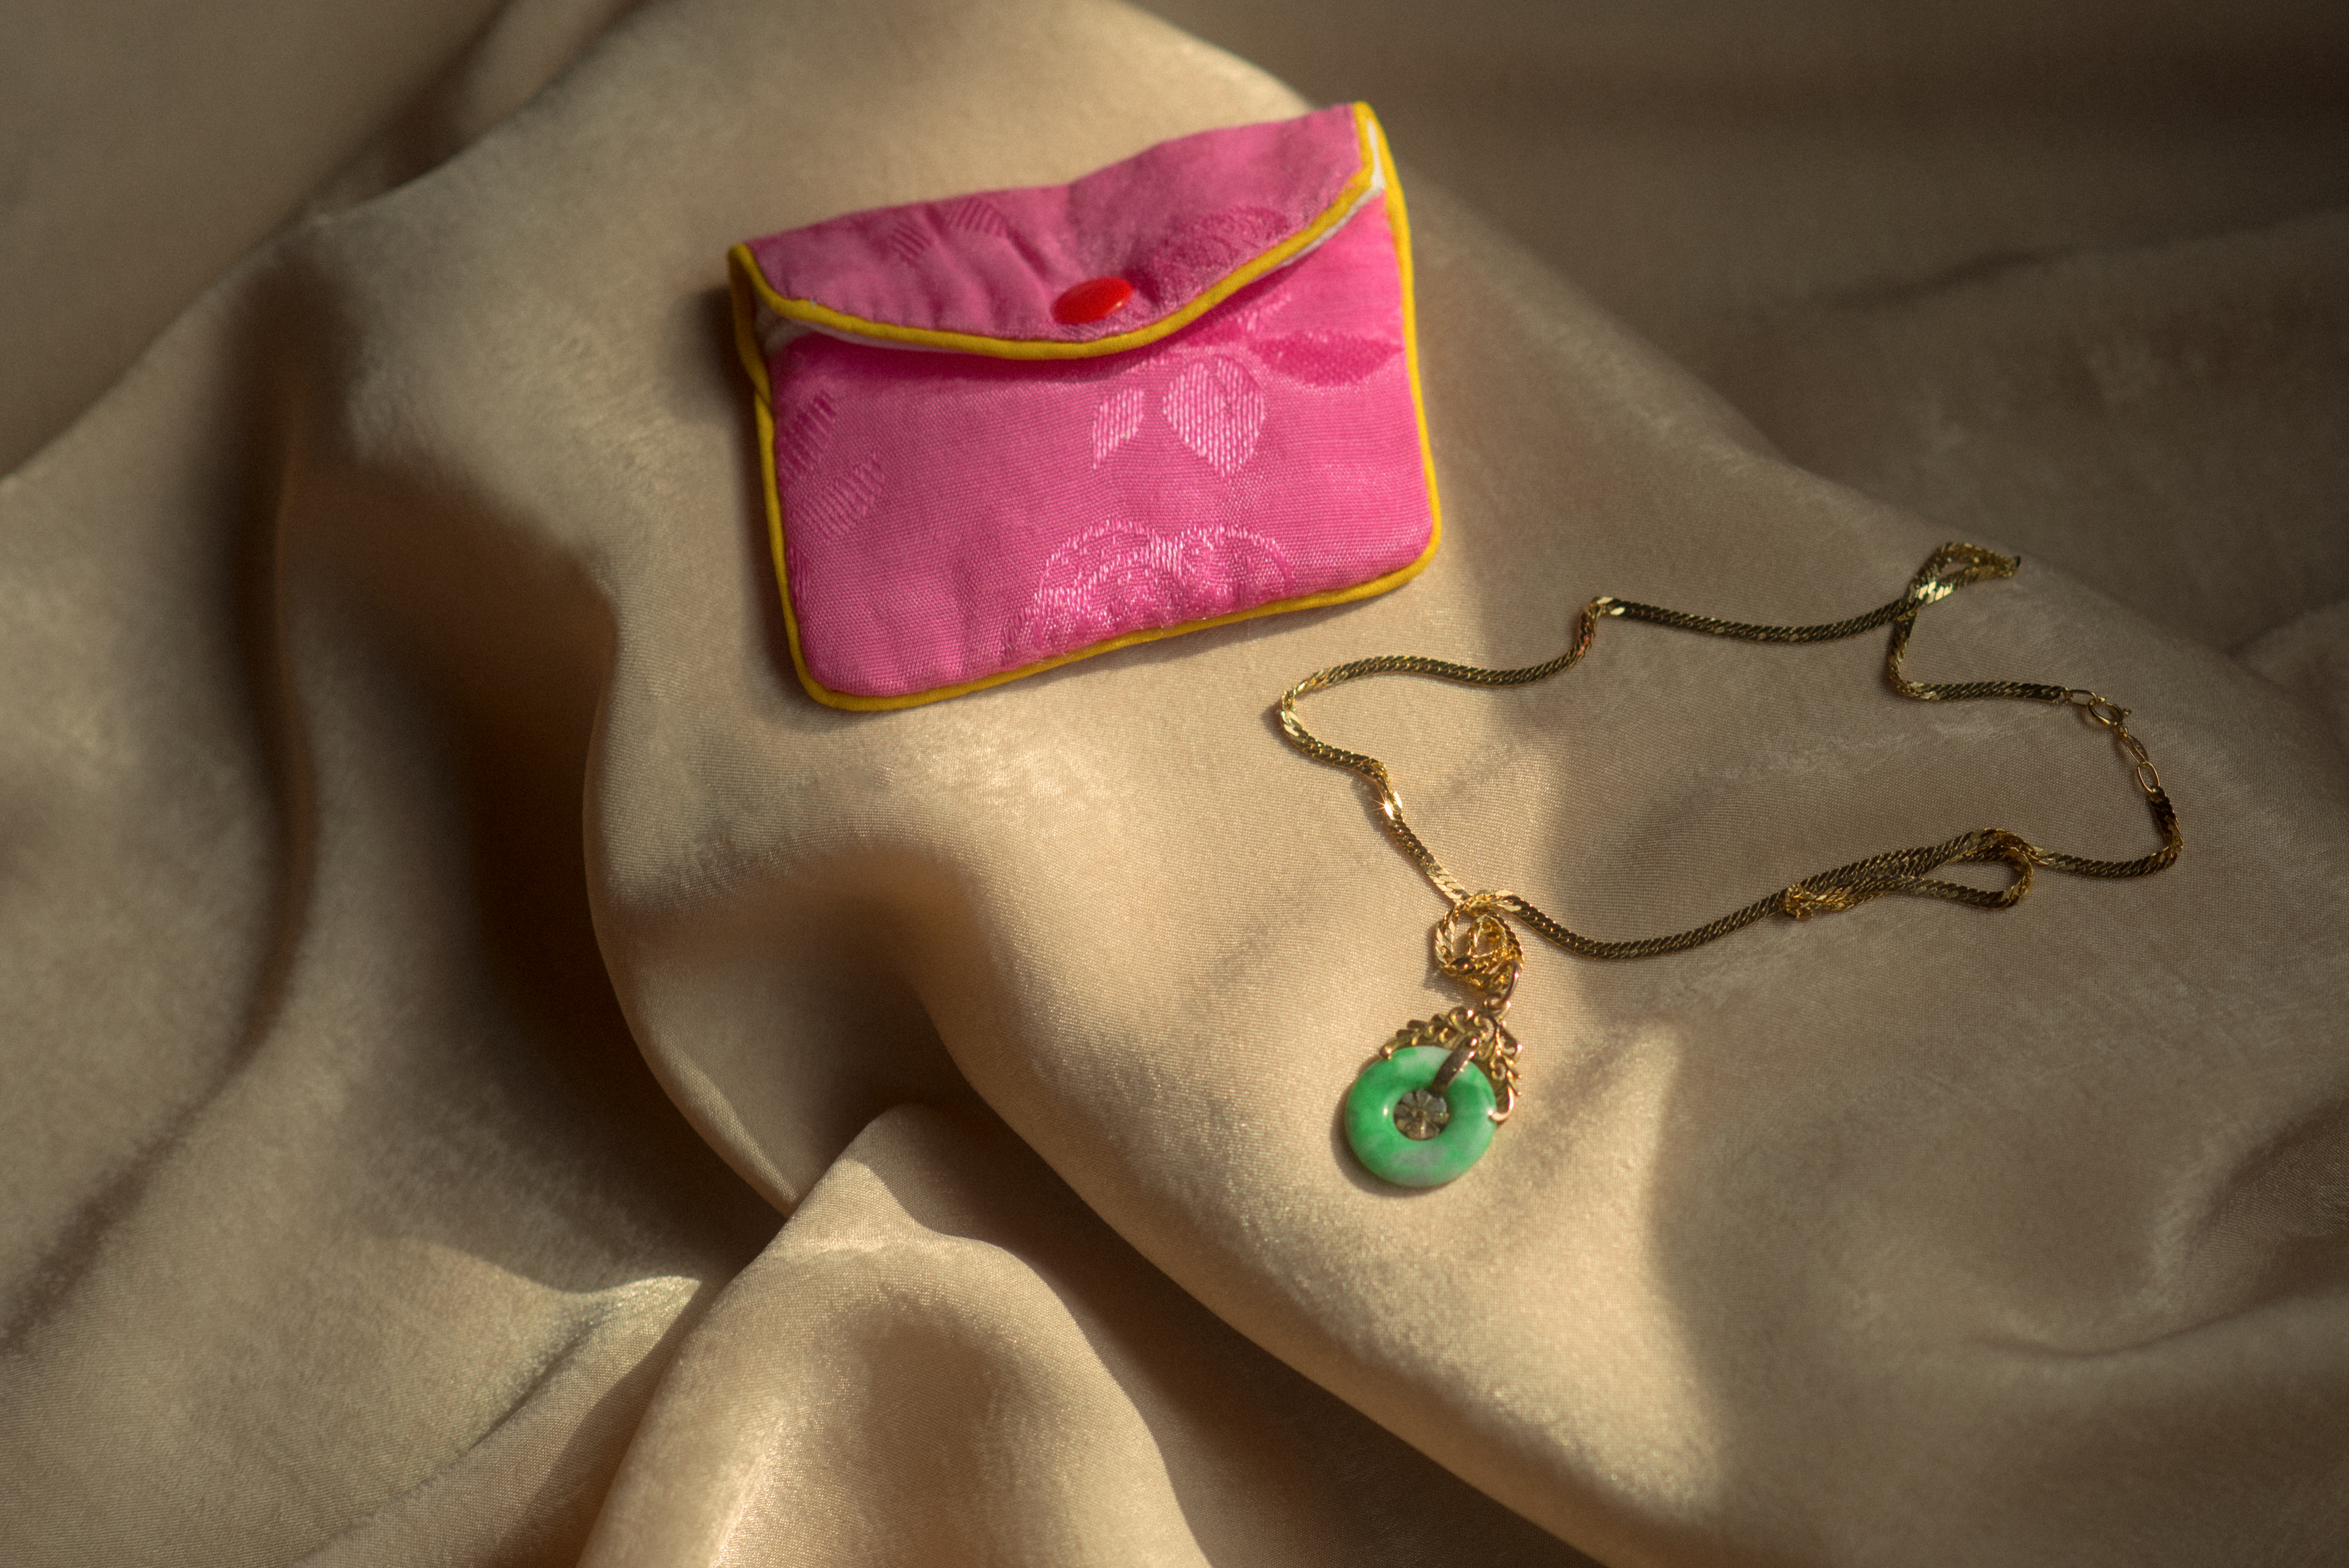 A gold necklace with a green circle pendant sits beside a pink pouch on a tan sheet.